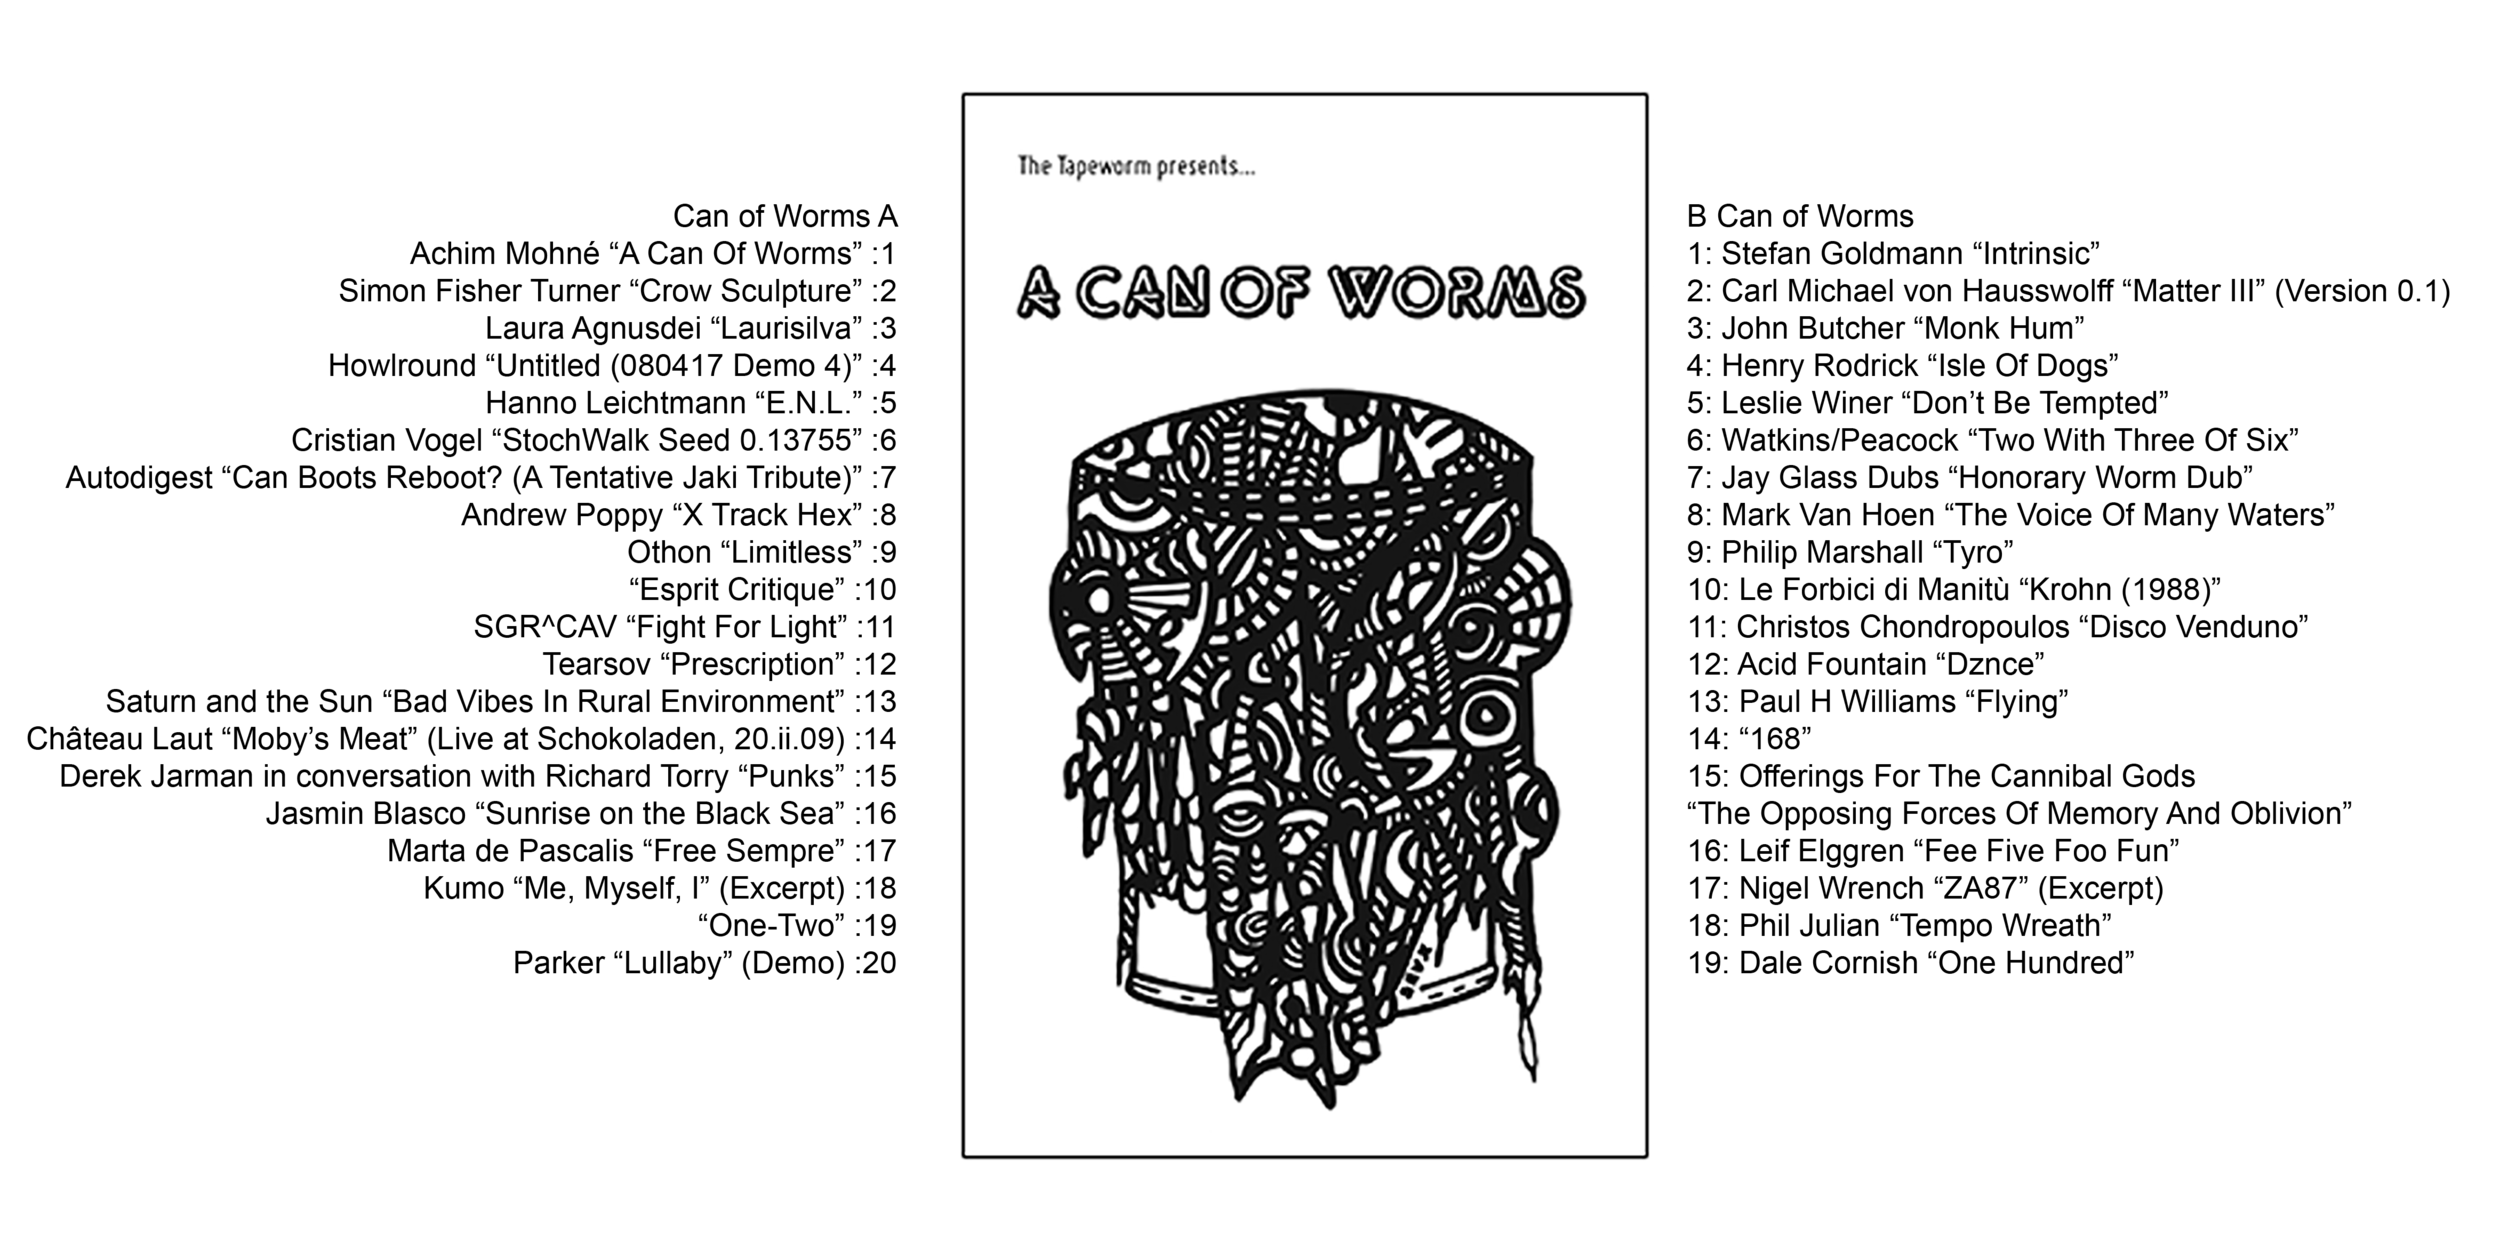 WWW_a can of worms_tapeworm 100.png